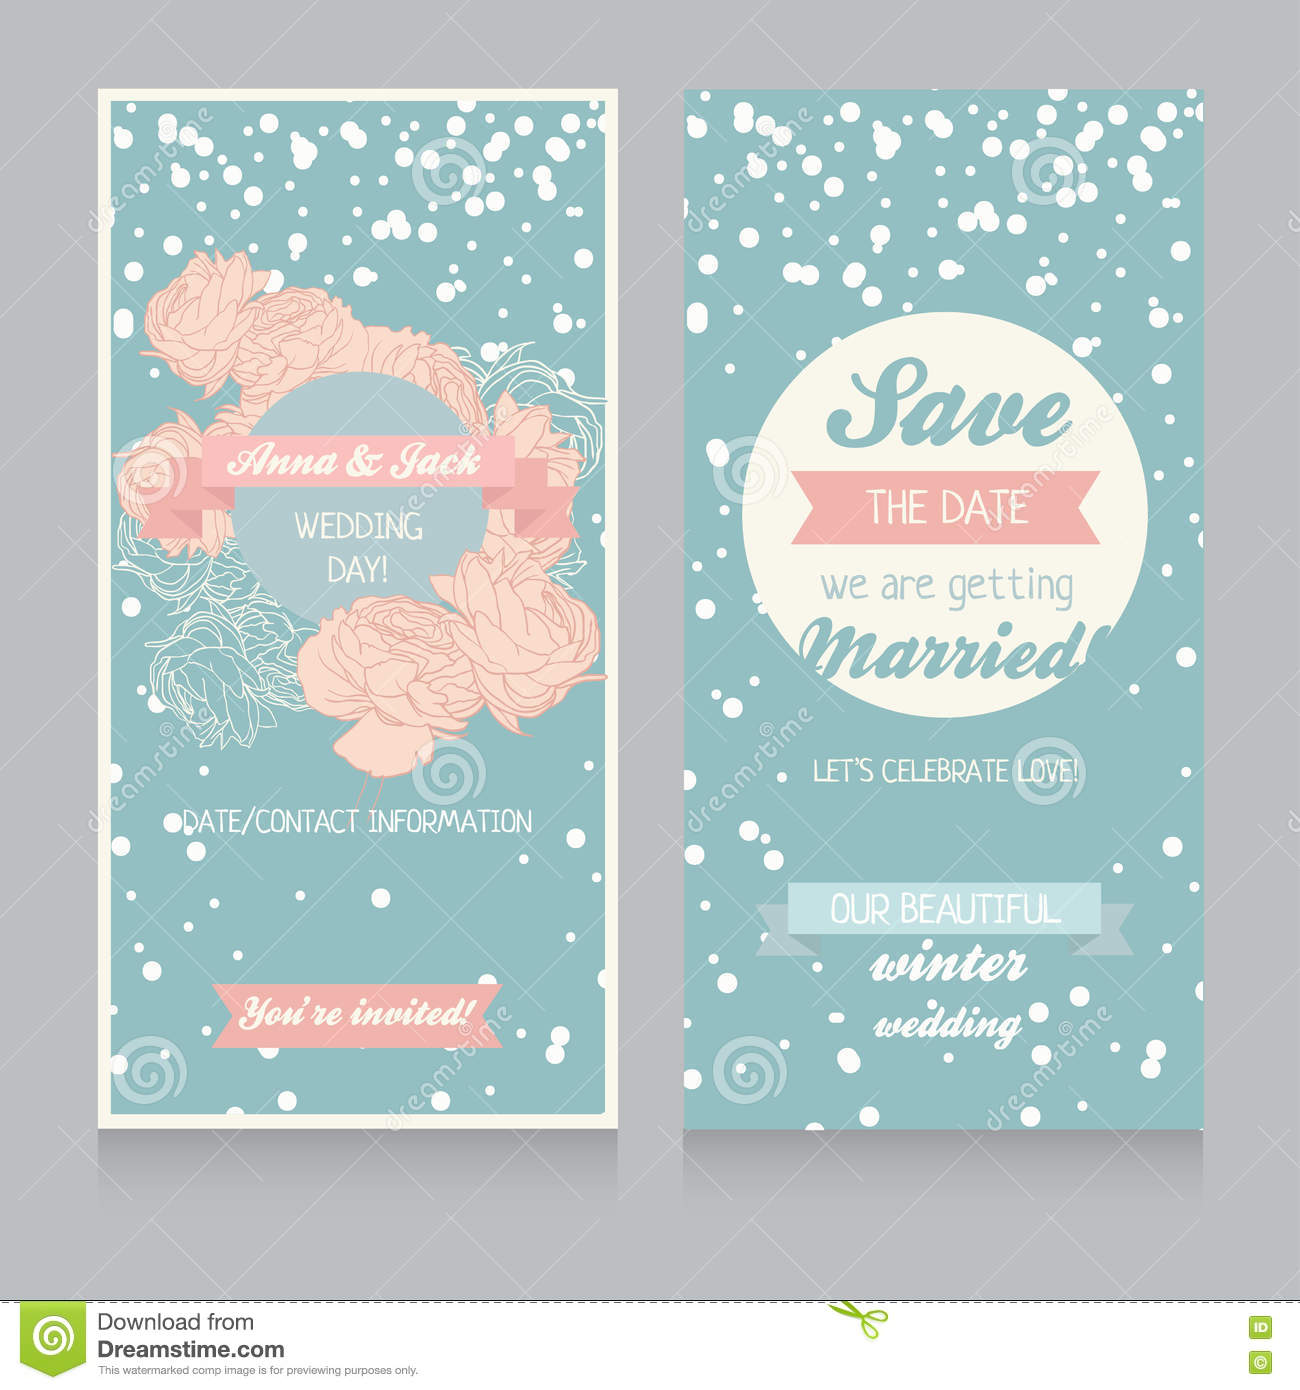 winter wedding invitation templates free - Military.bralicious.co